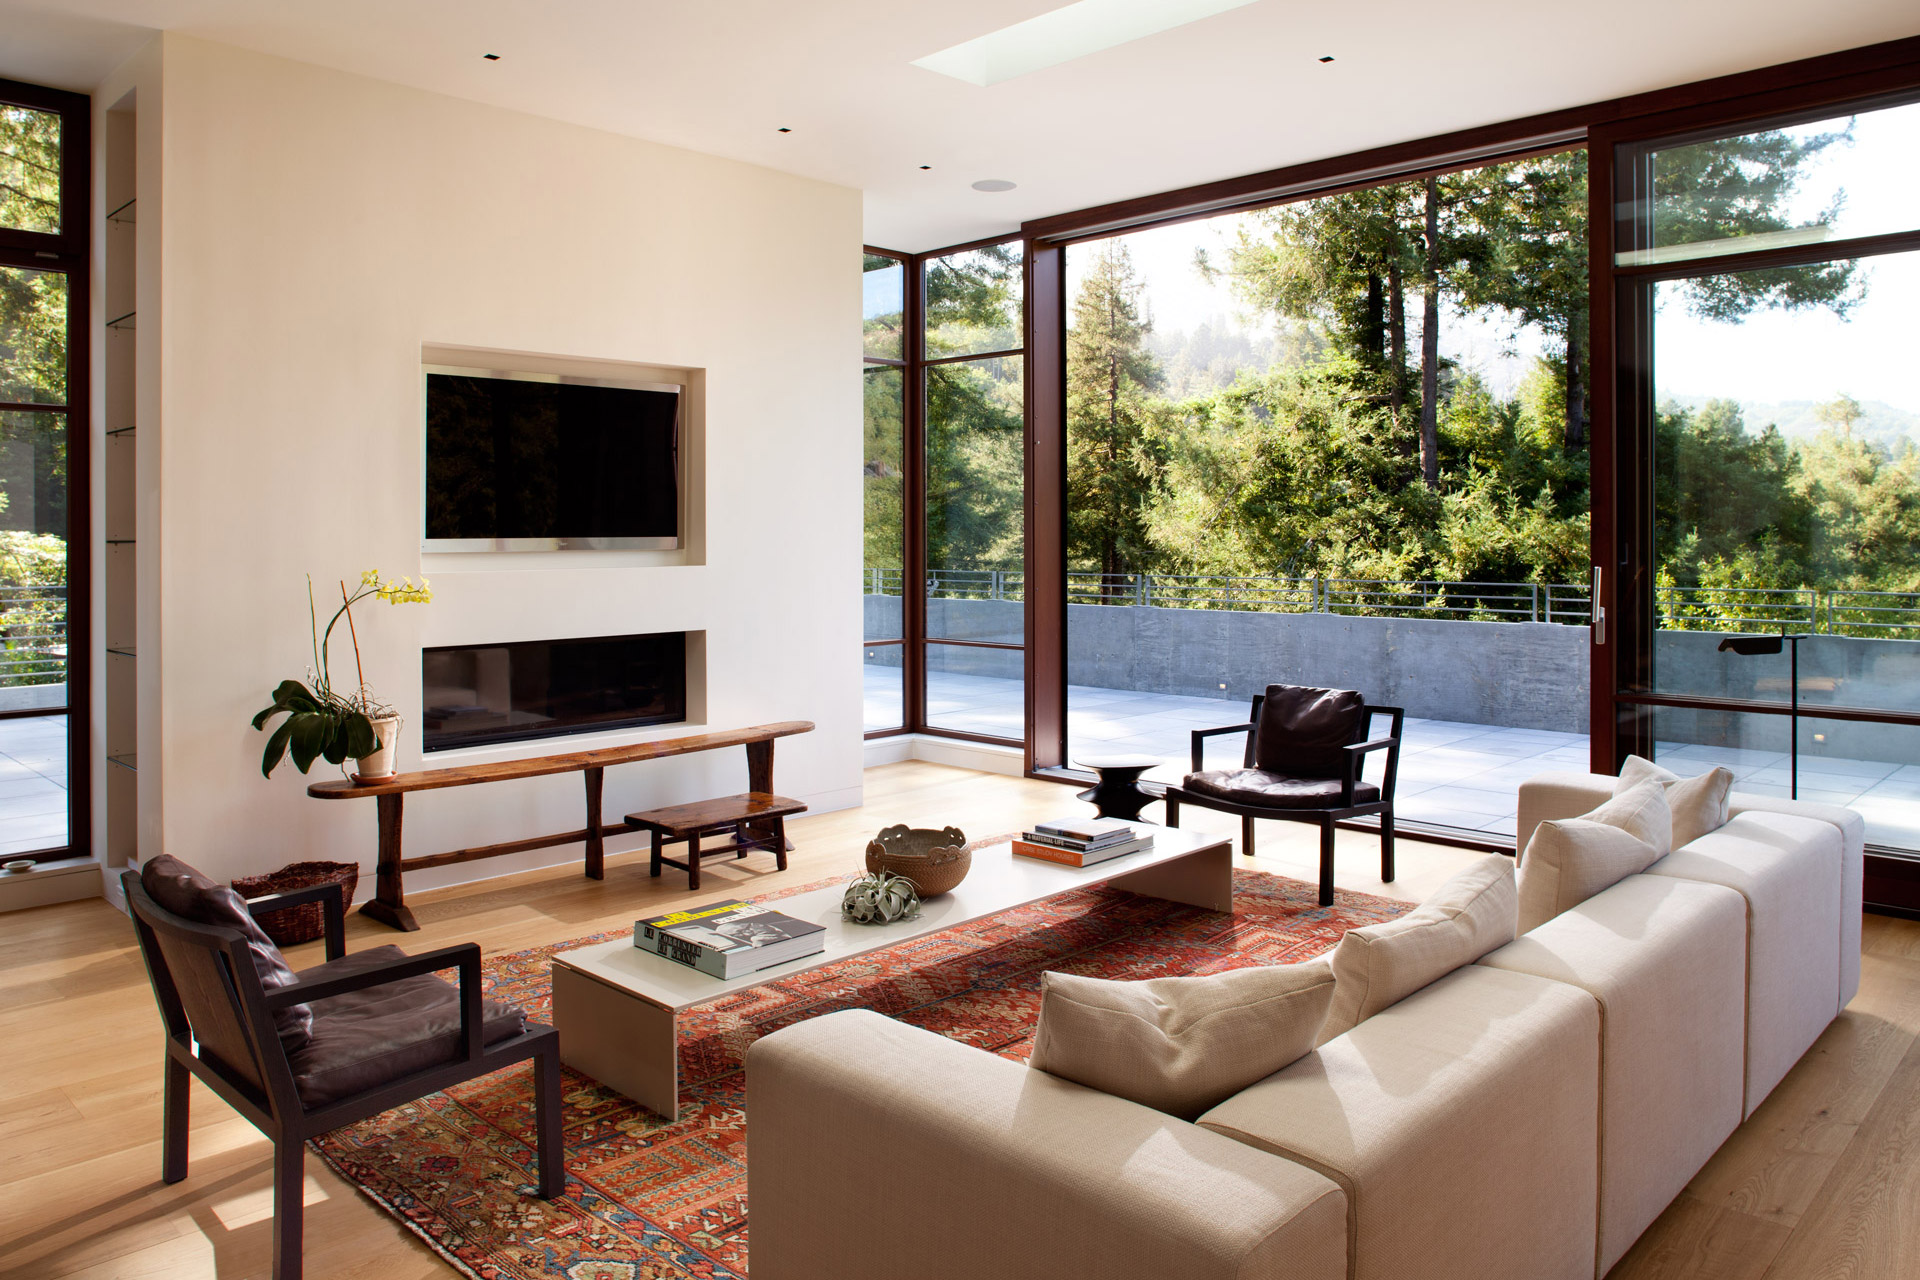 Mill Valley Residence interiors